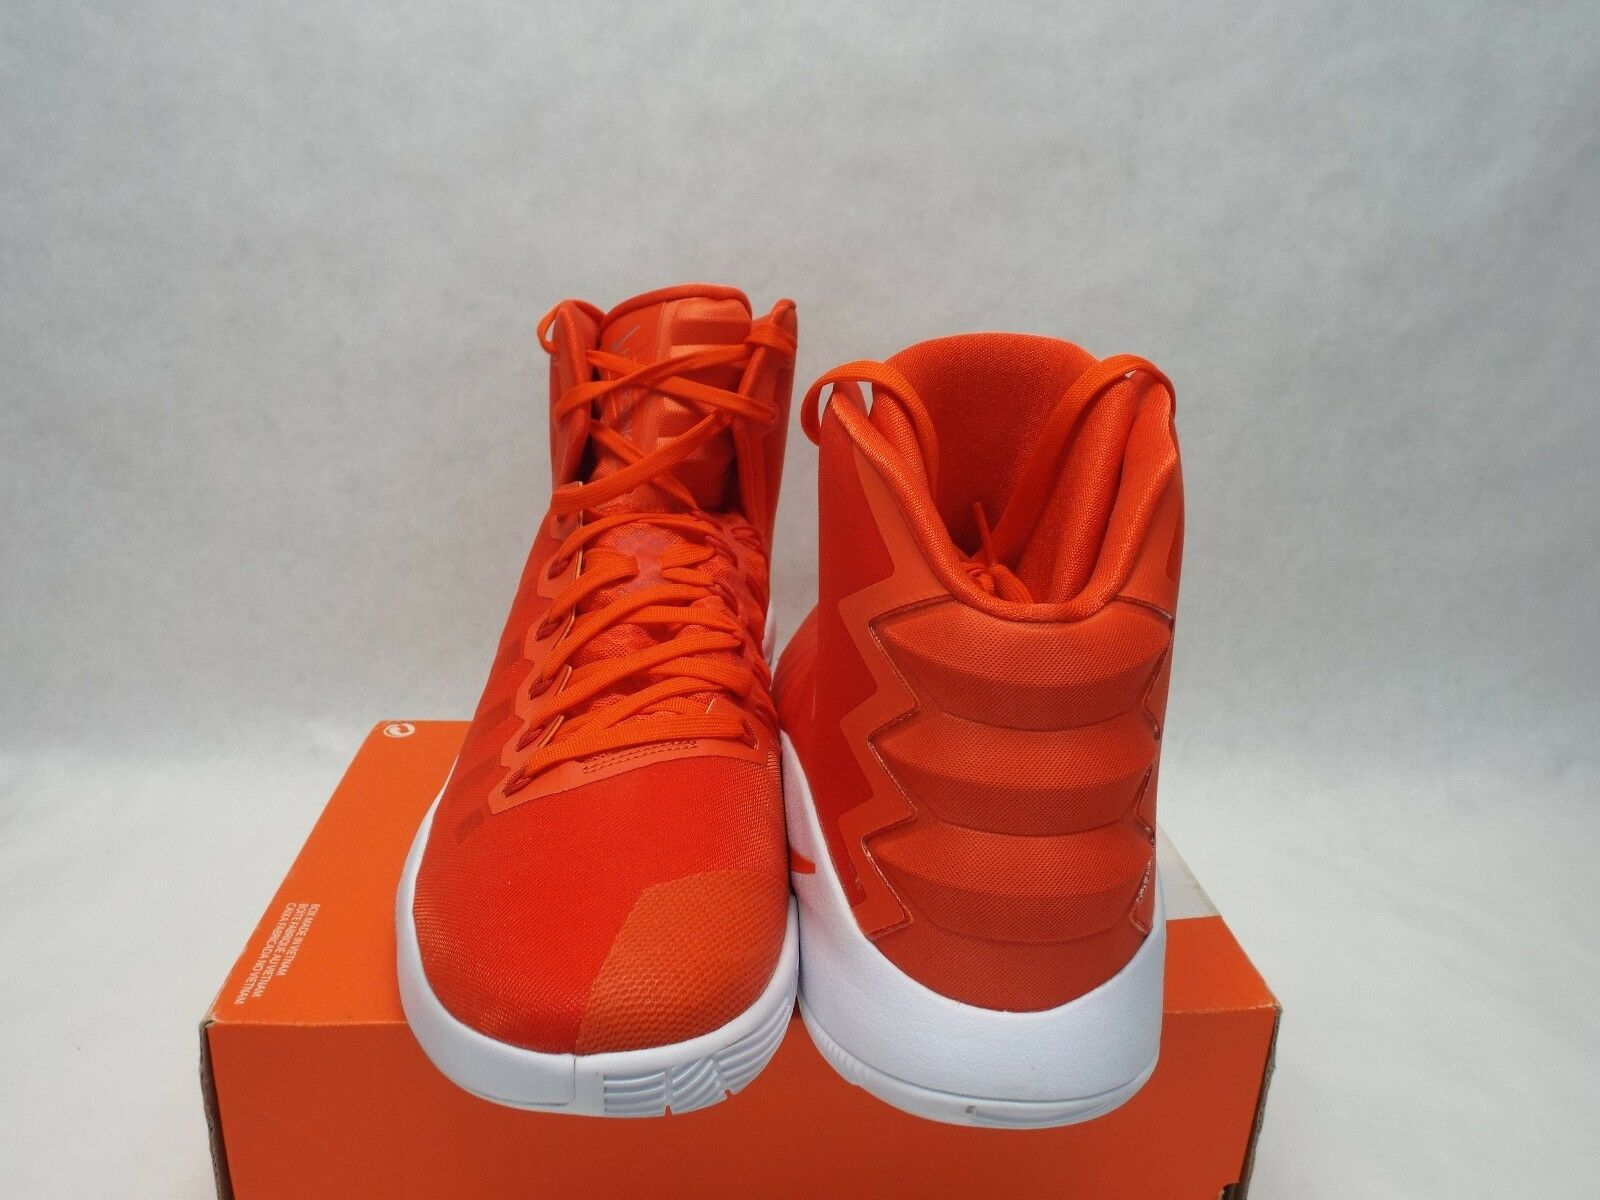 New Hommes 16 NIKE Hyperdunk 2018 TB Basketball Orange blanc 844368-881  Chaussures  150 844368-881 blanc 2e2502